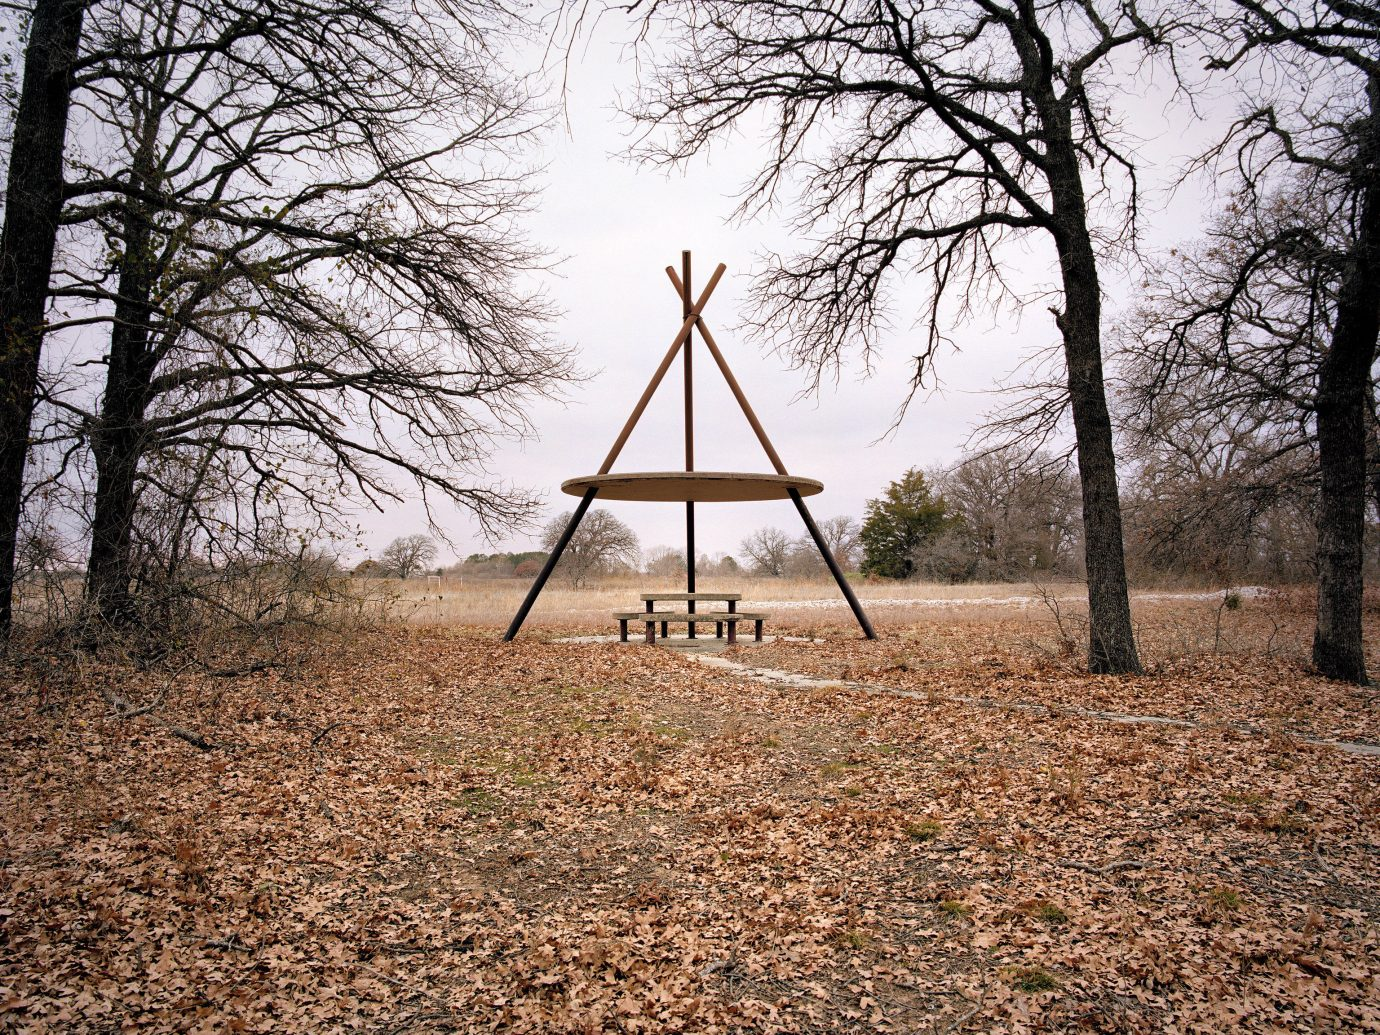 Arts + Culture tree outdoor ground habitat Nature natural environment woodland Forest Winter season morning dry woody plant sunlight leaf rural area autumn dirt wooded distance